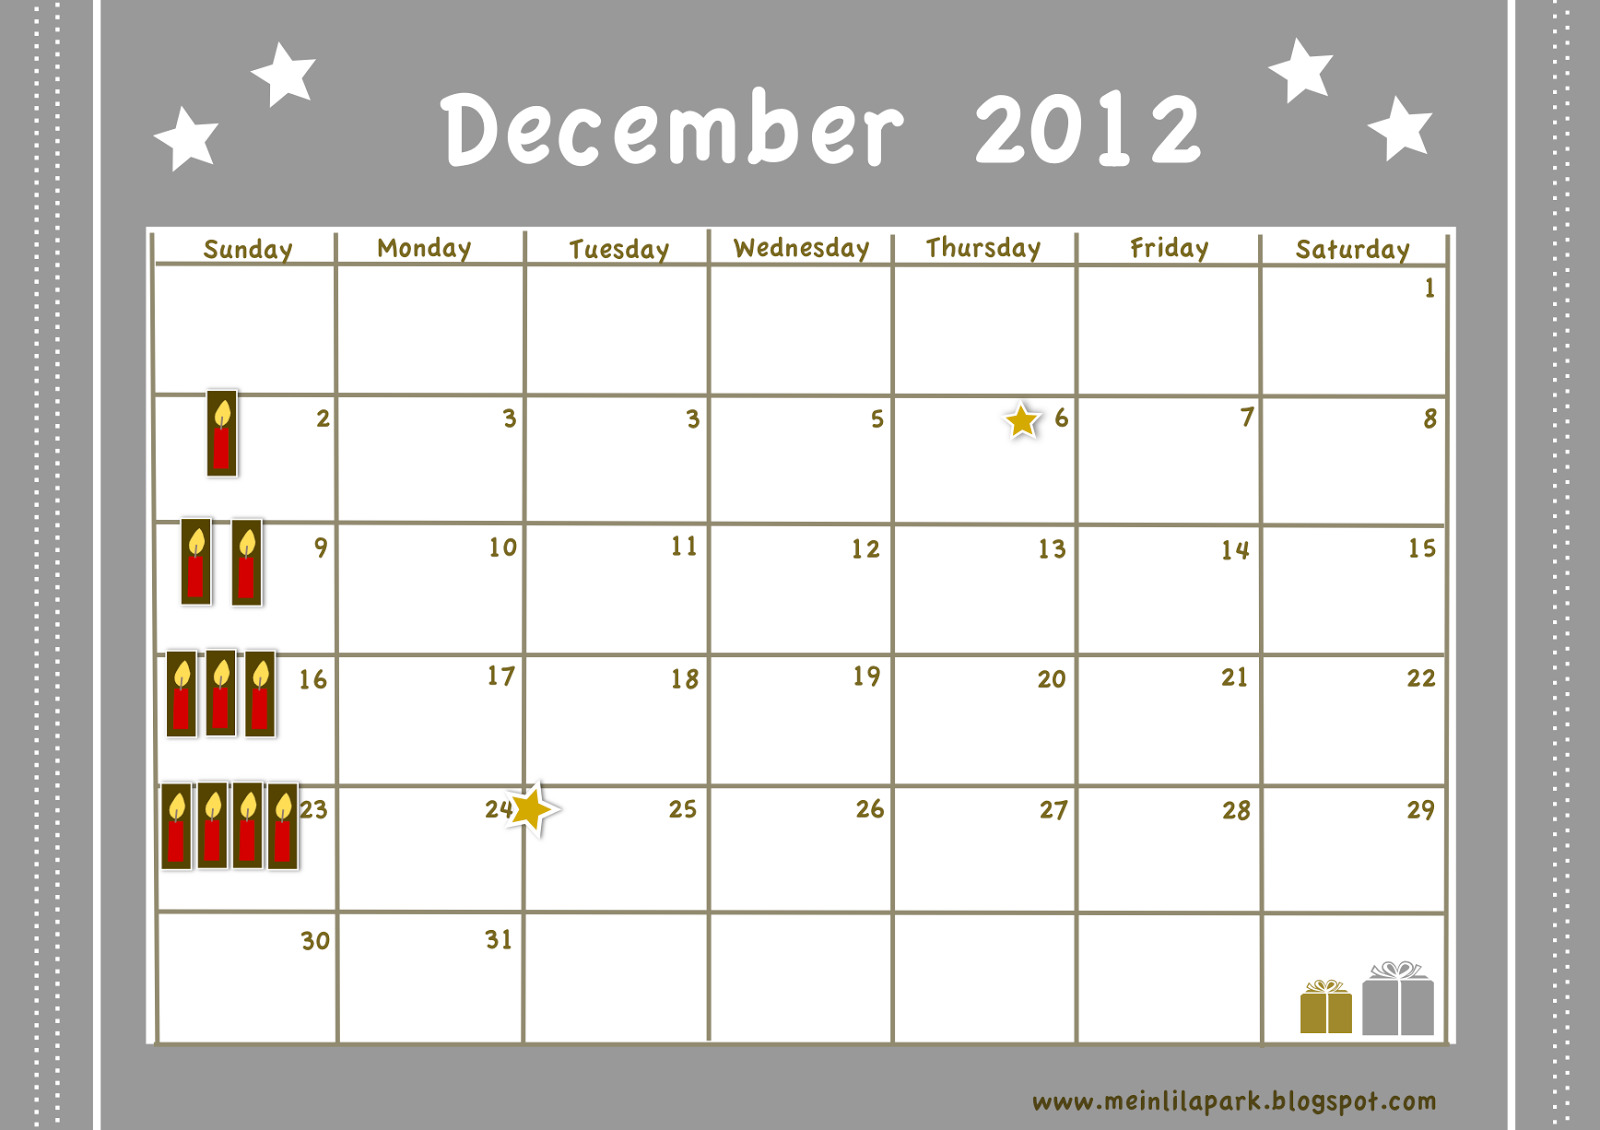 free printable december 2012 calendar planner ausdruckbarer dezember kalender freebie. Black Bedroom Furniture Sets. Home Design Ideas